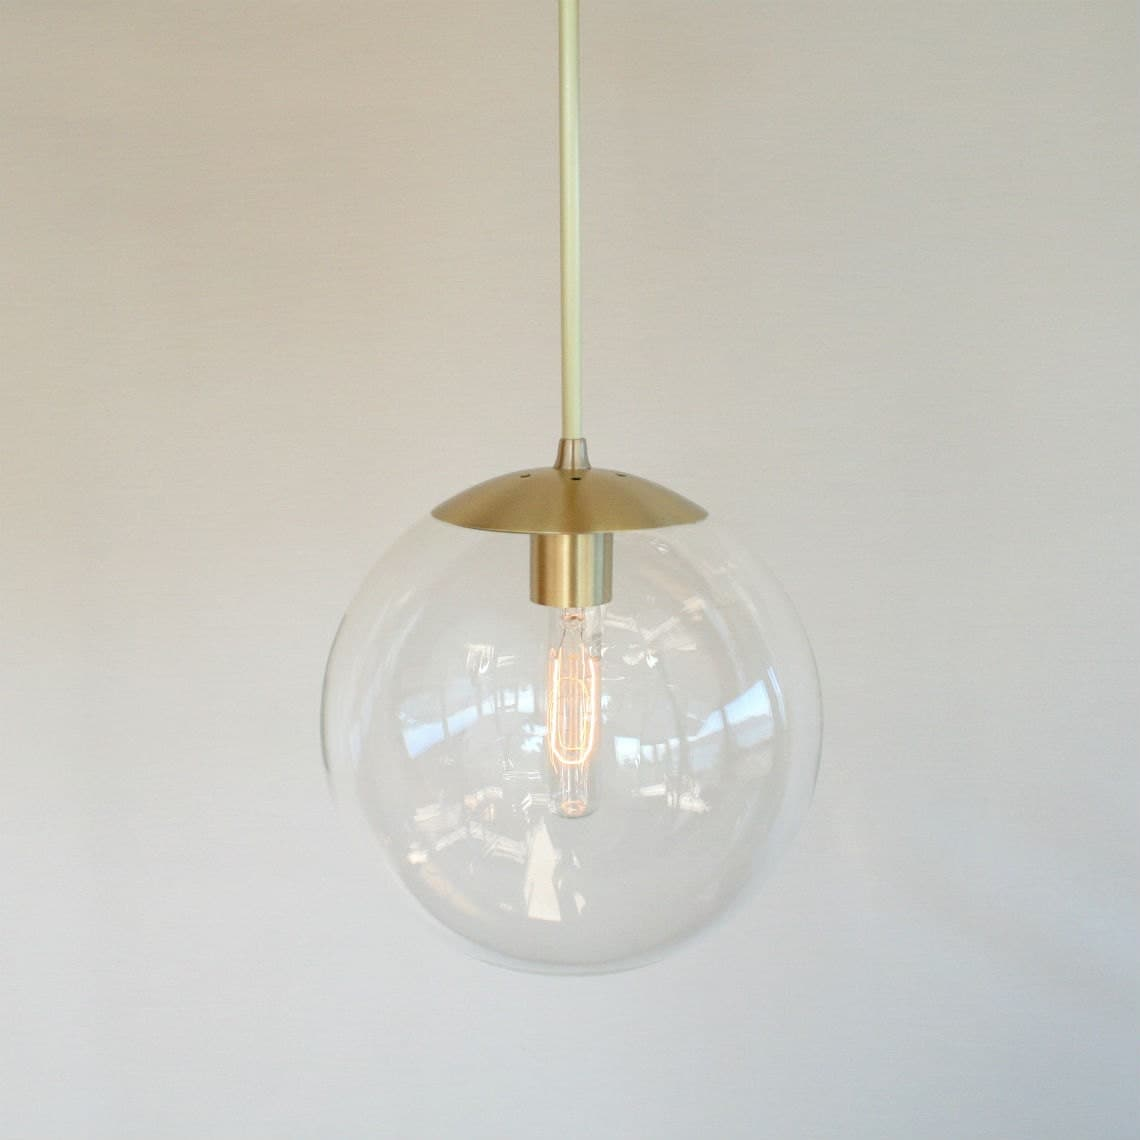 Mid century modern 10 globe pendant light clear glass Modern pendant lighting